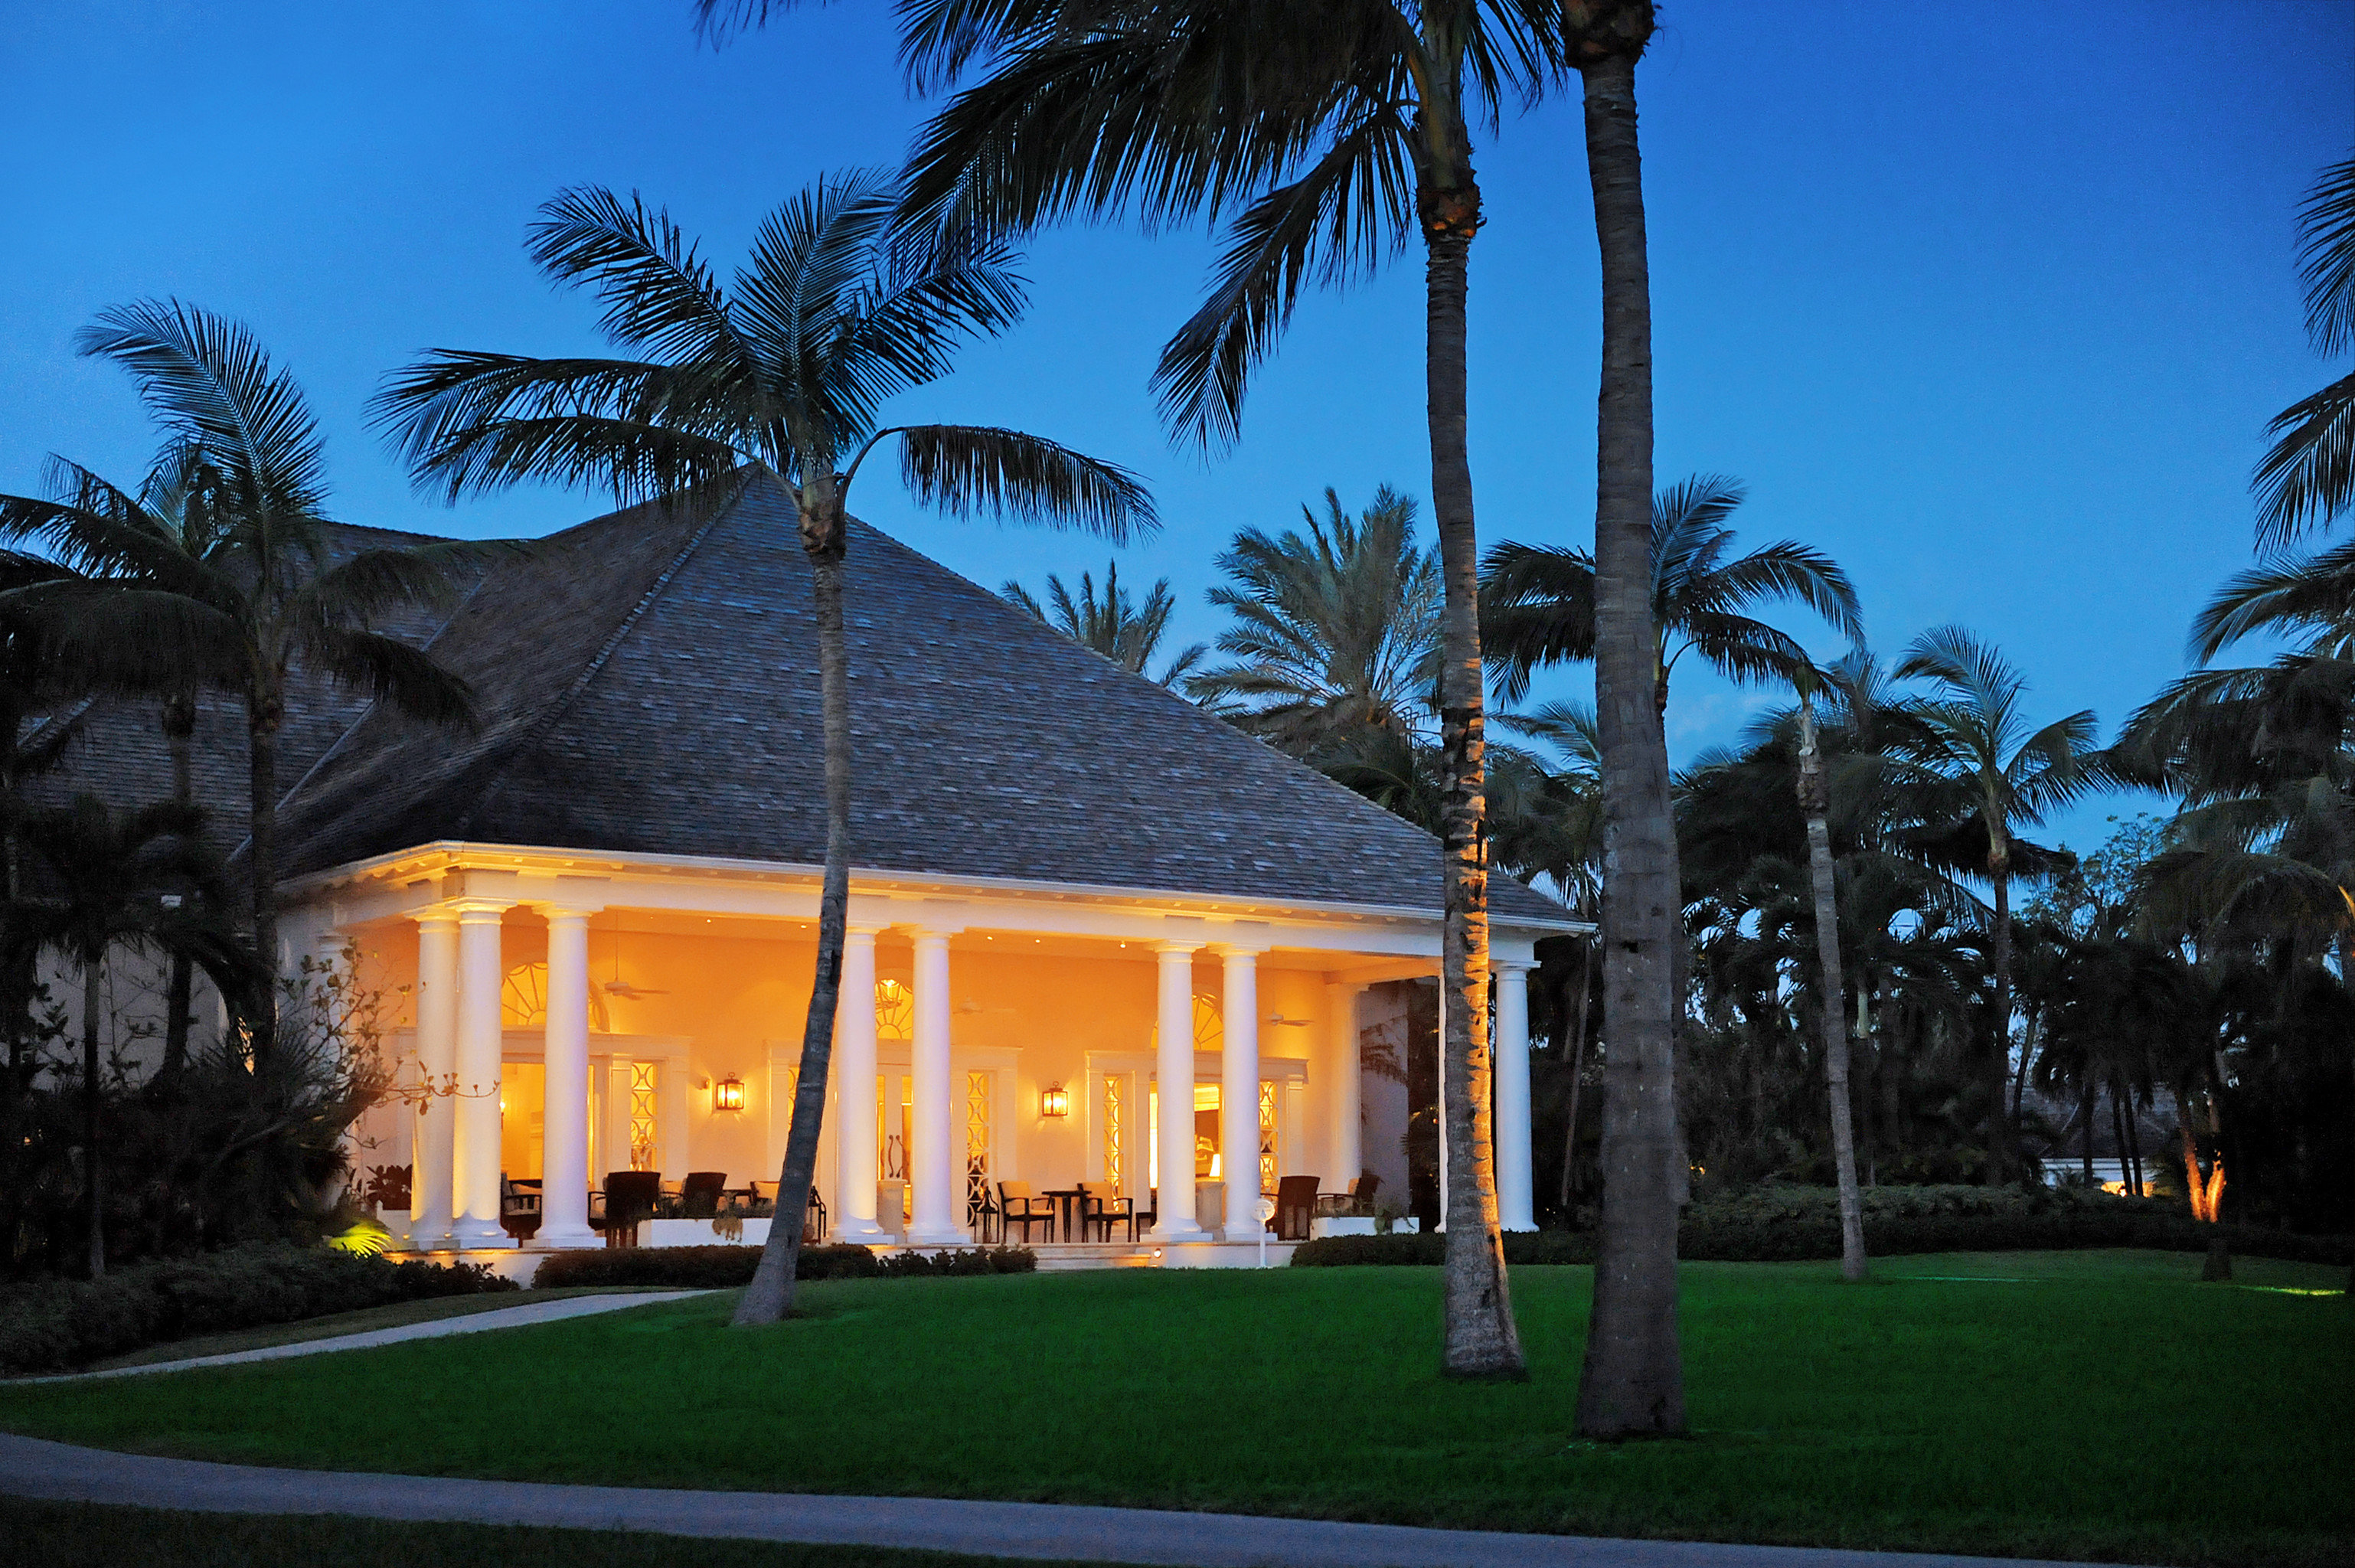 Family Grounds tree sky grass palm house Resort home arecales mansion plant